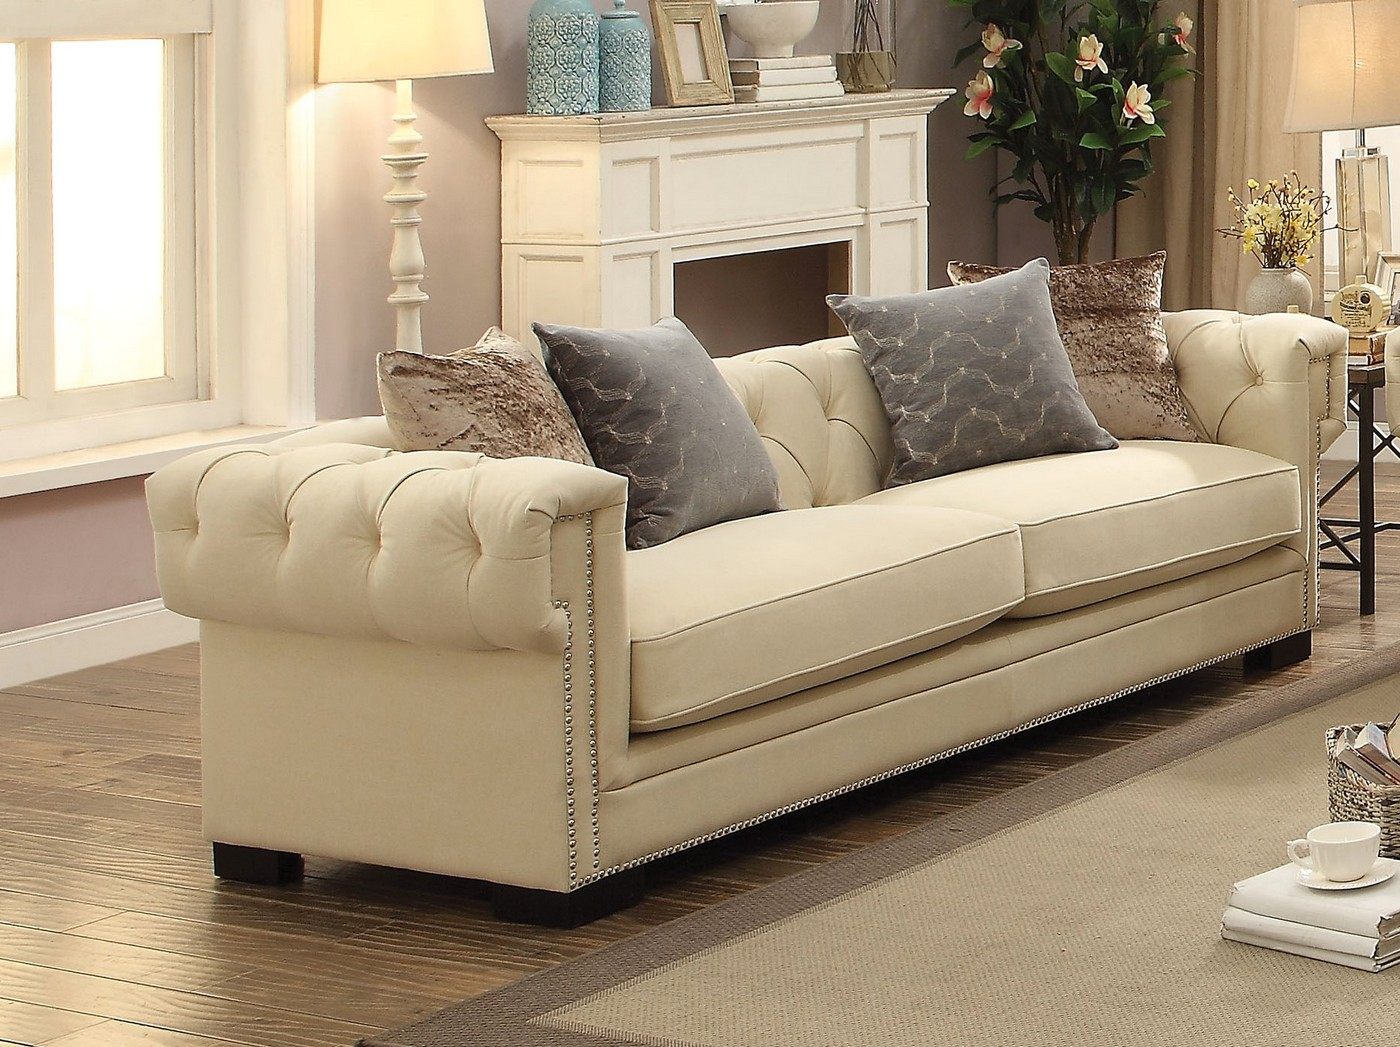 Creme Tufted Sofa In Sophisticated Cream Velvet with 8-way ...